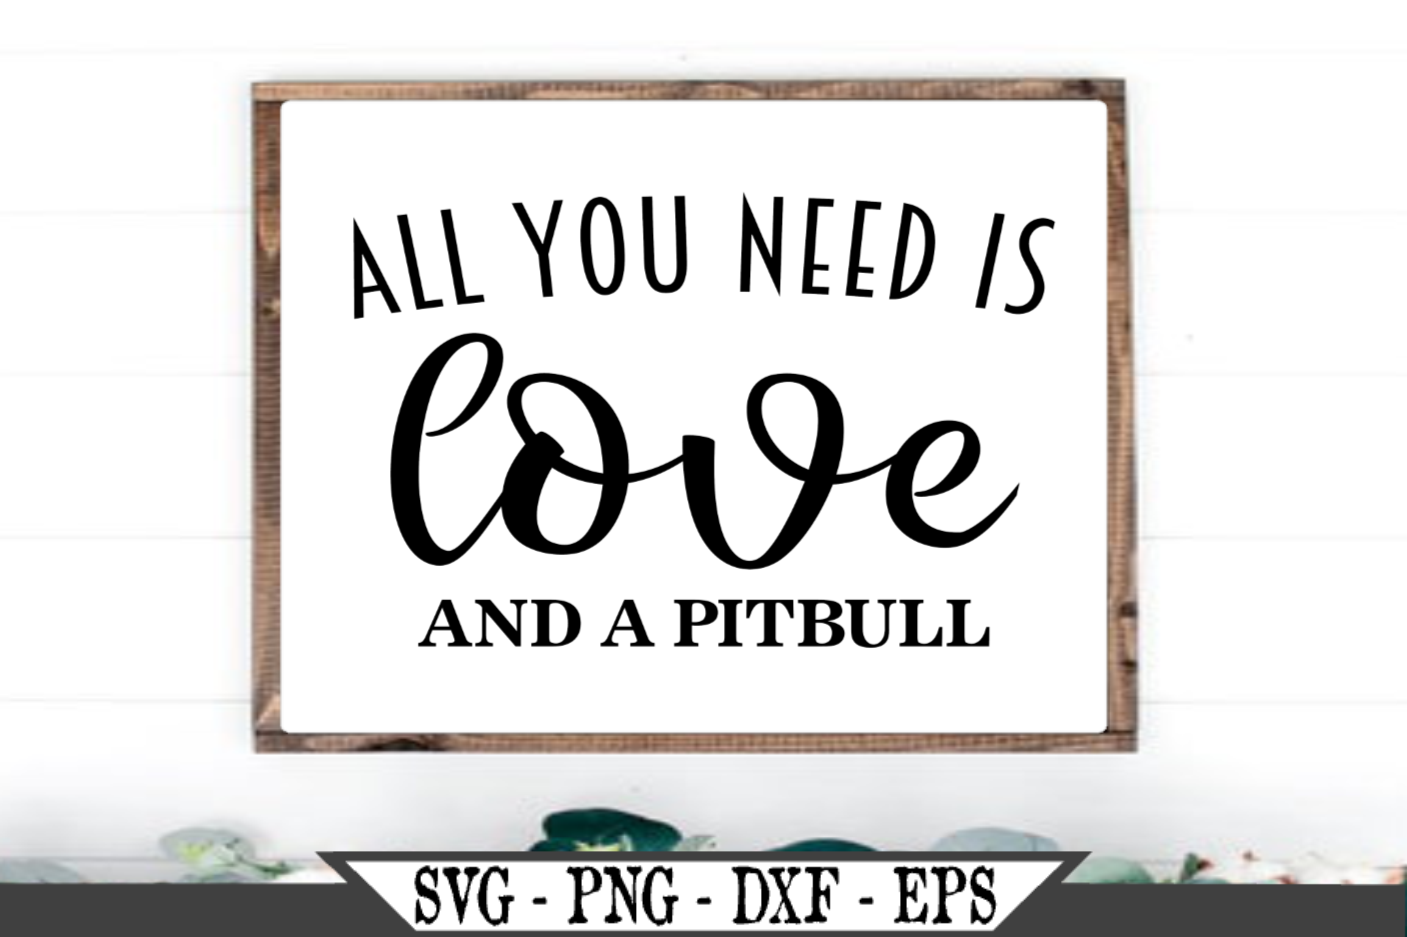 All You Need Is Love And A Pitbull Dog SVG example image 1